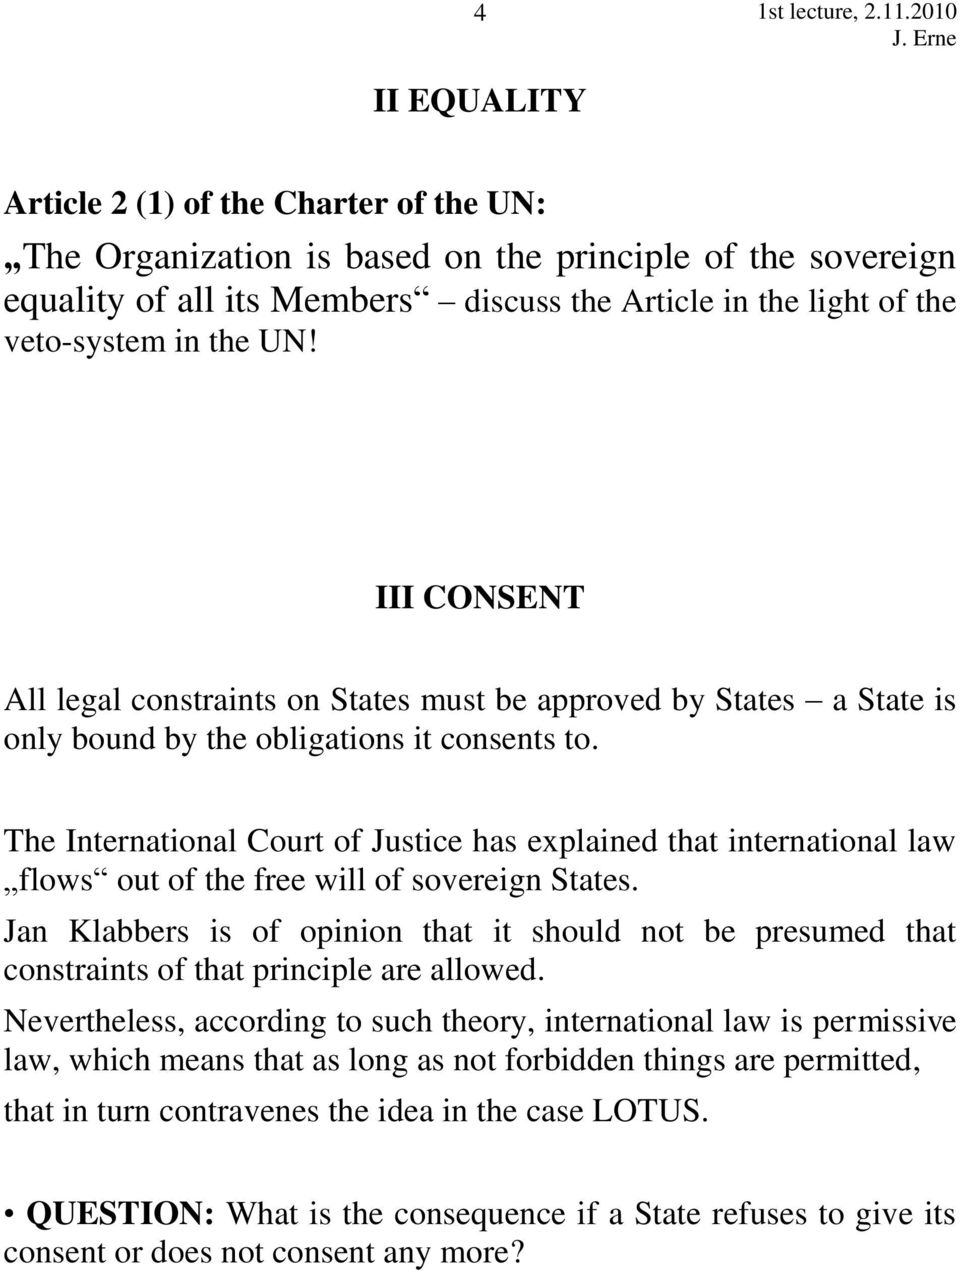 The International Court of Justice has explained that international law flows out of the free will of sovereign States.